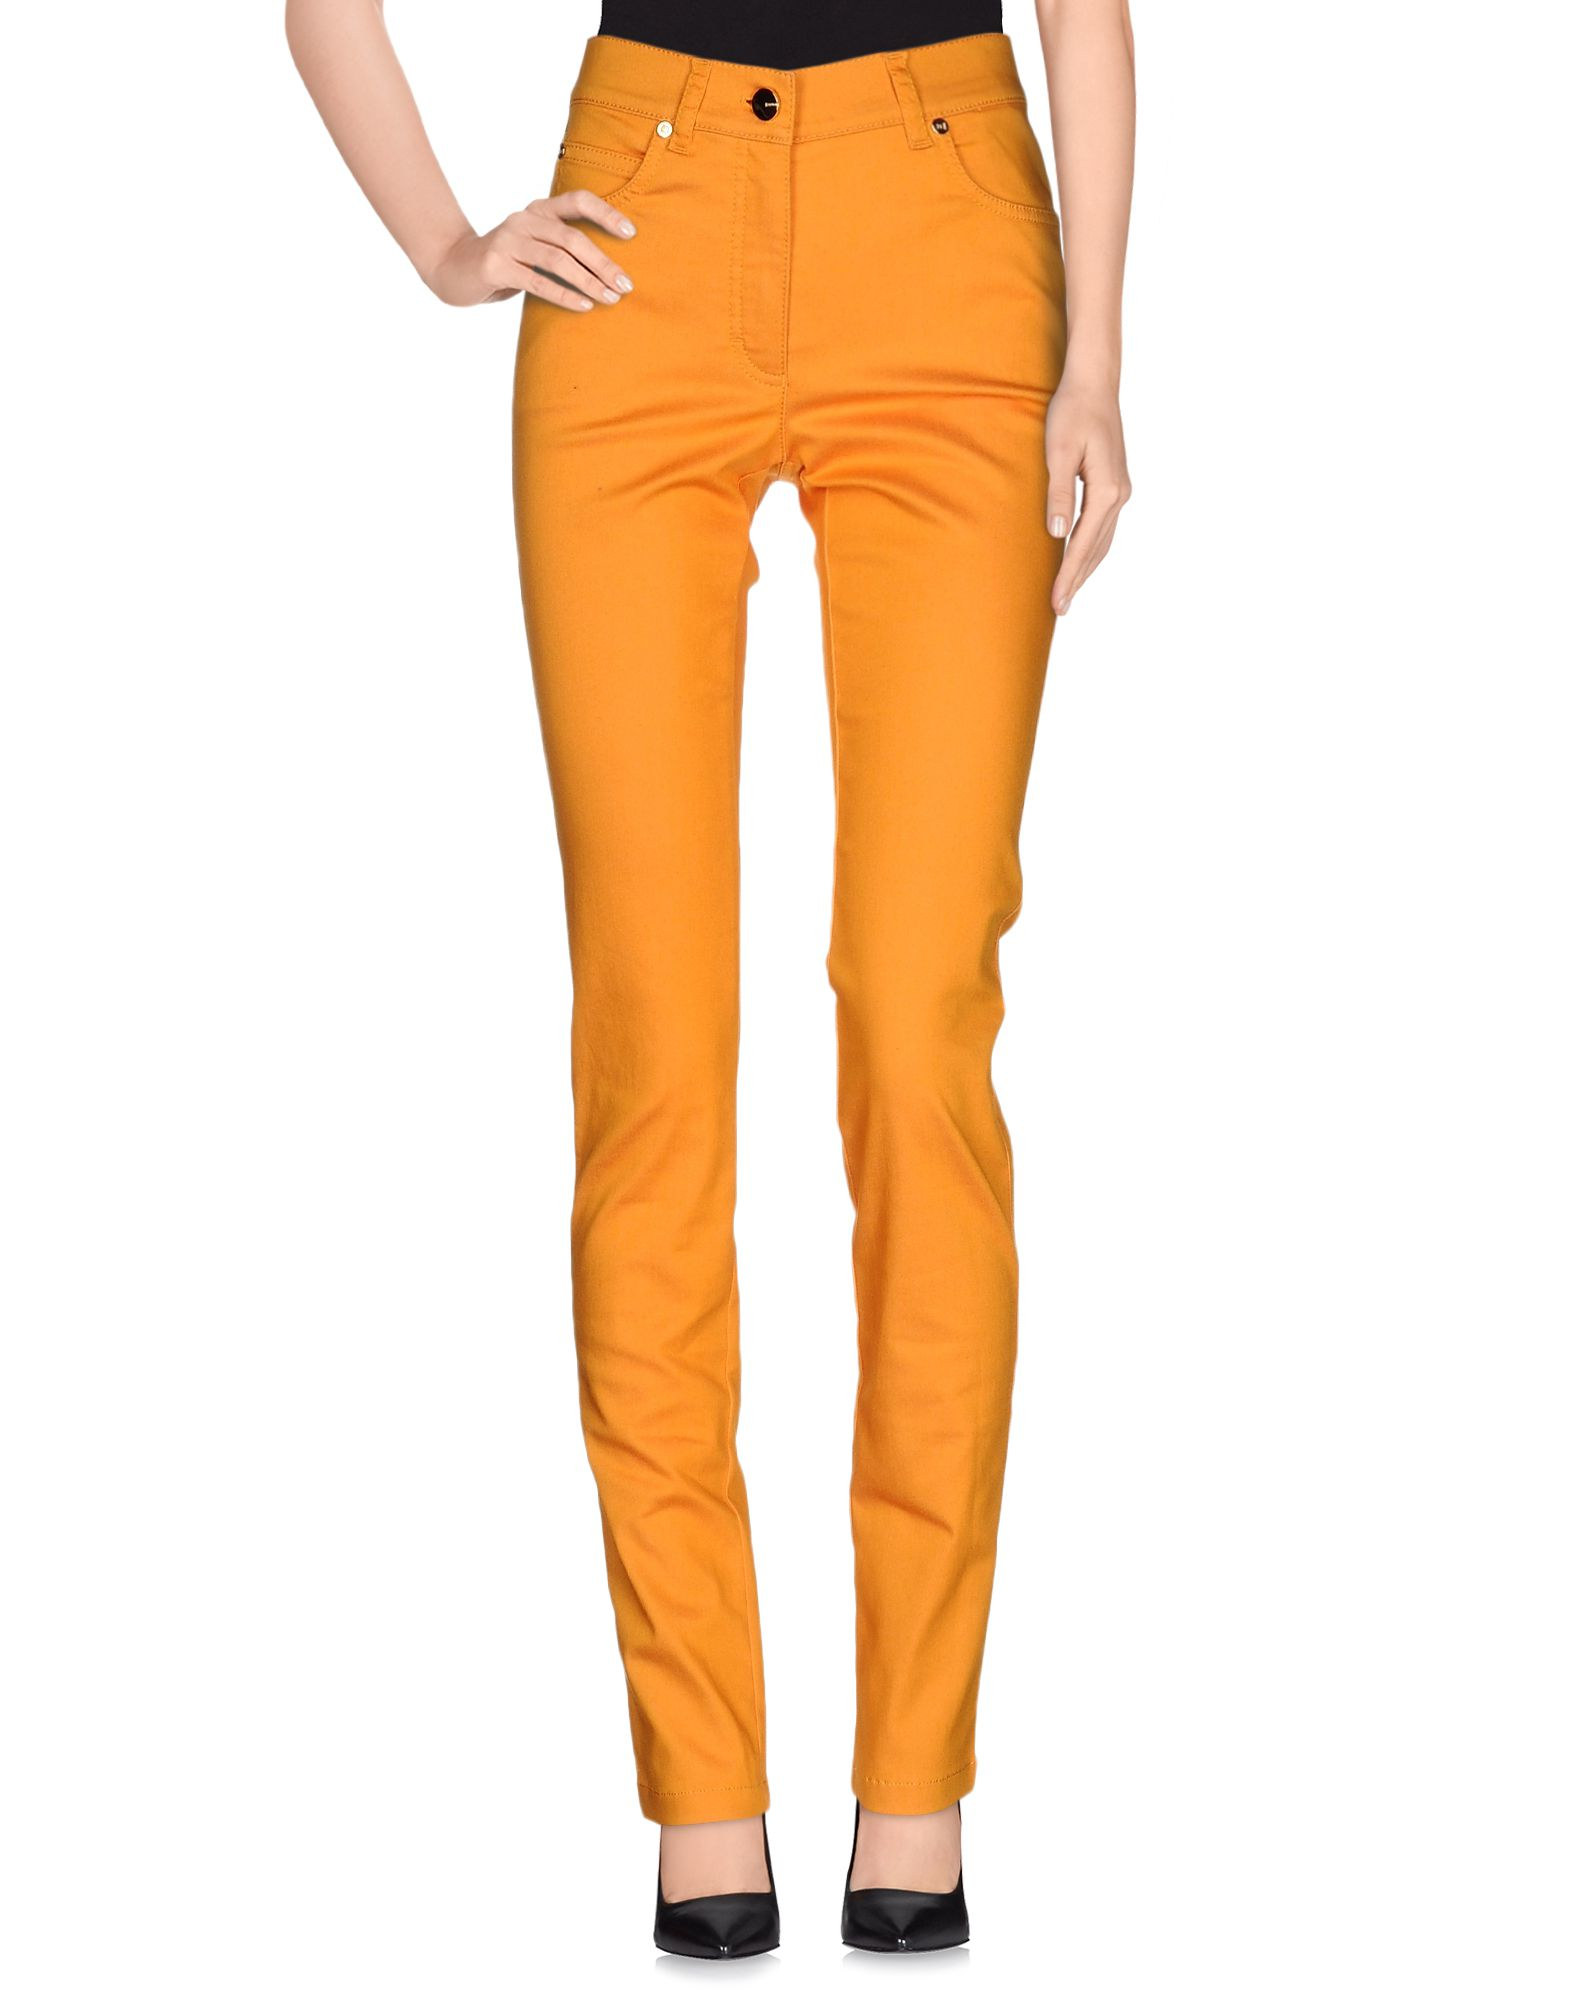 Simple Pinkoblackorangecasualpantsstraightlegpantsproduct124587860